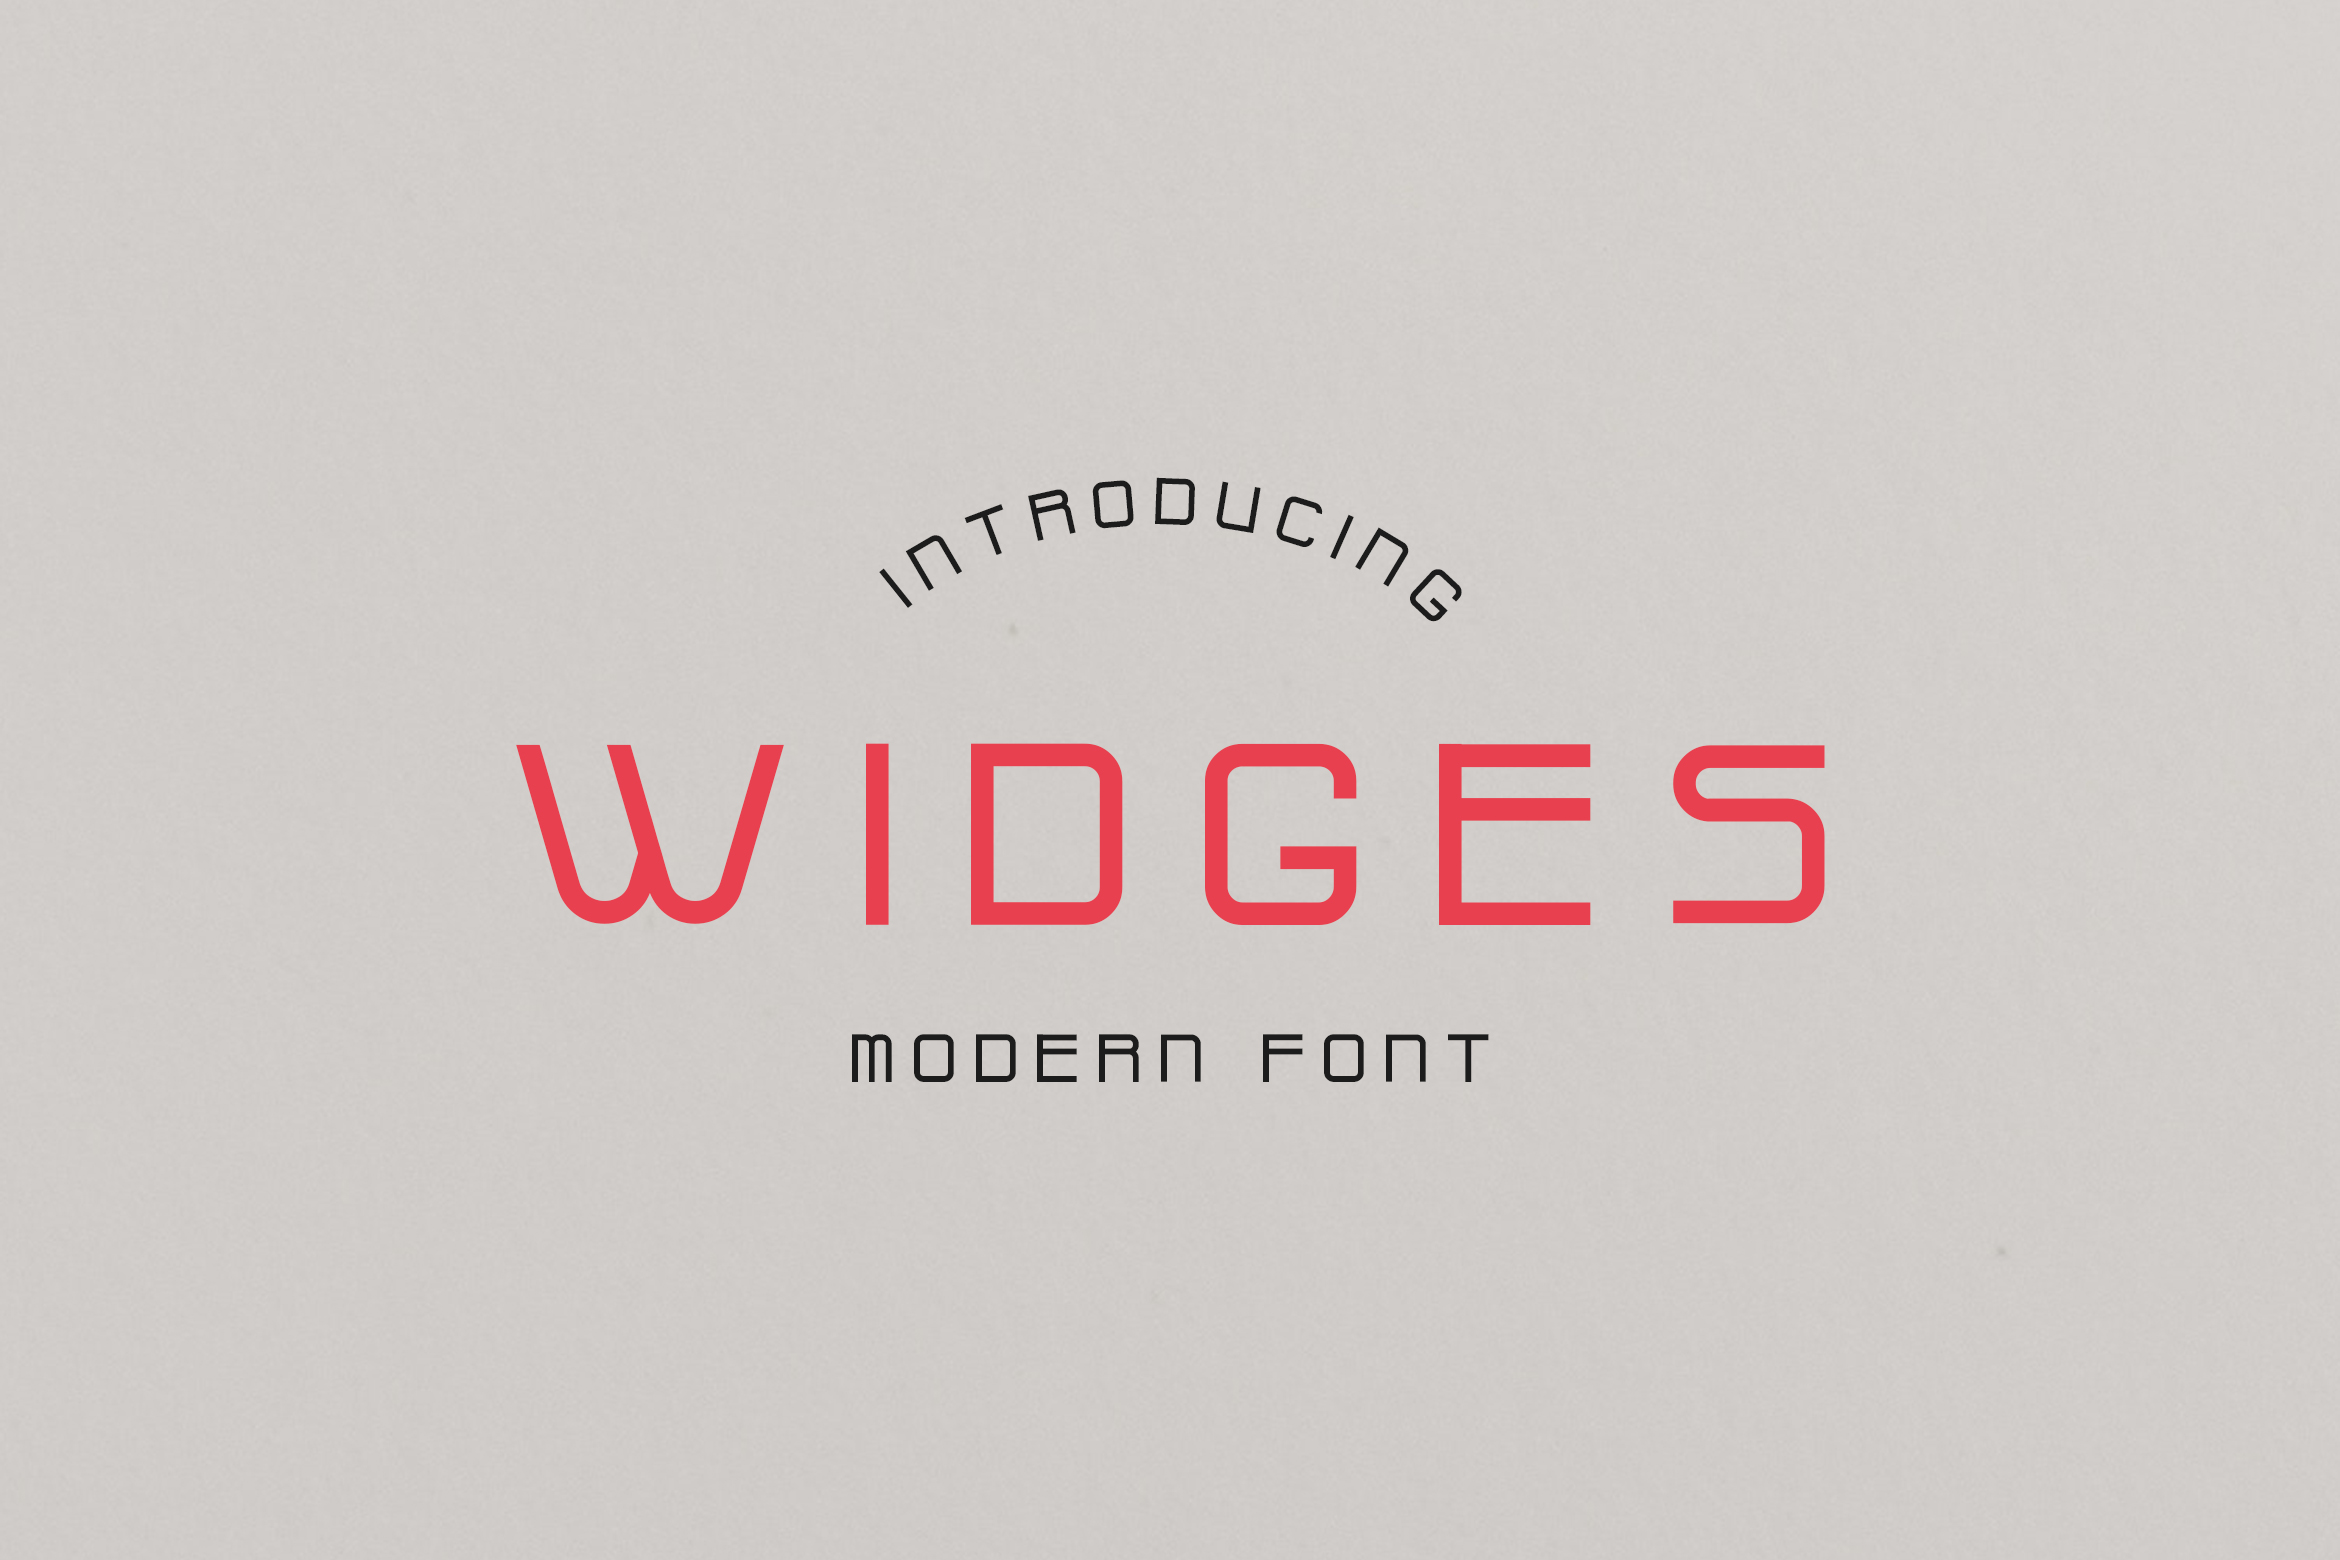 Widges Modern Font example image 1